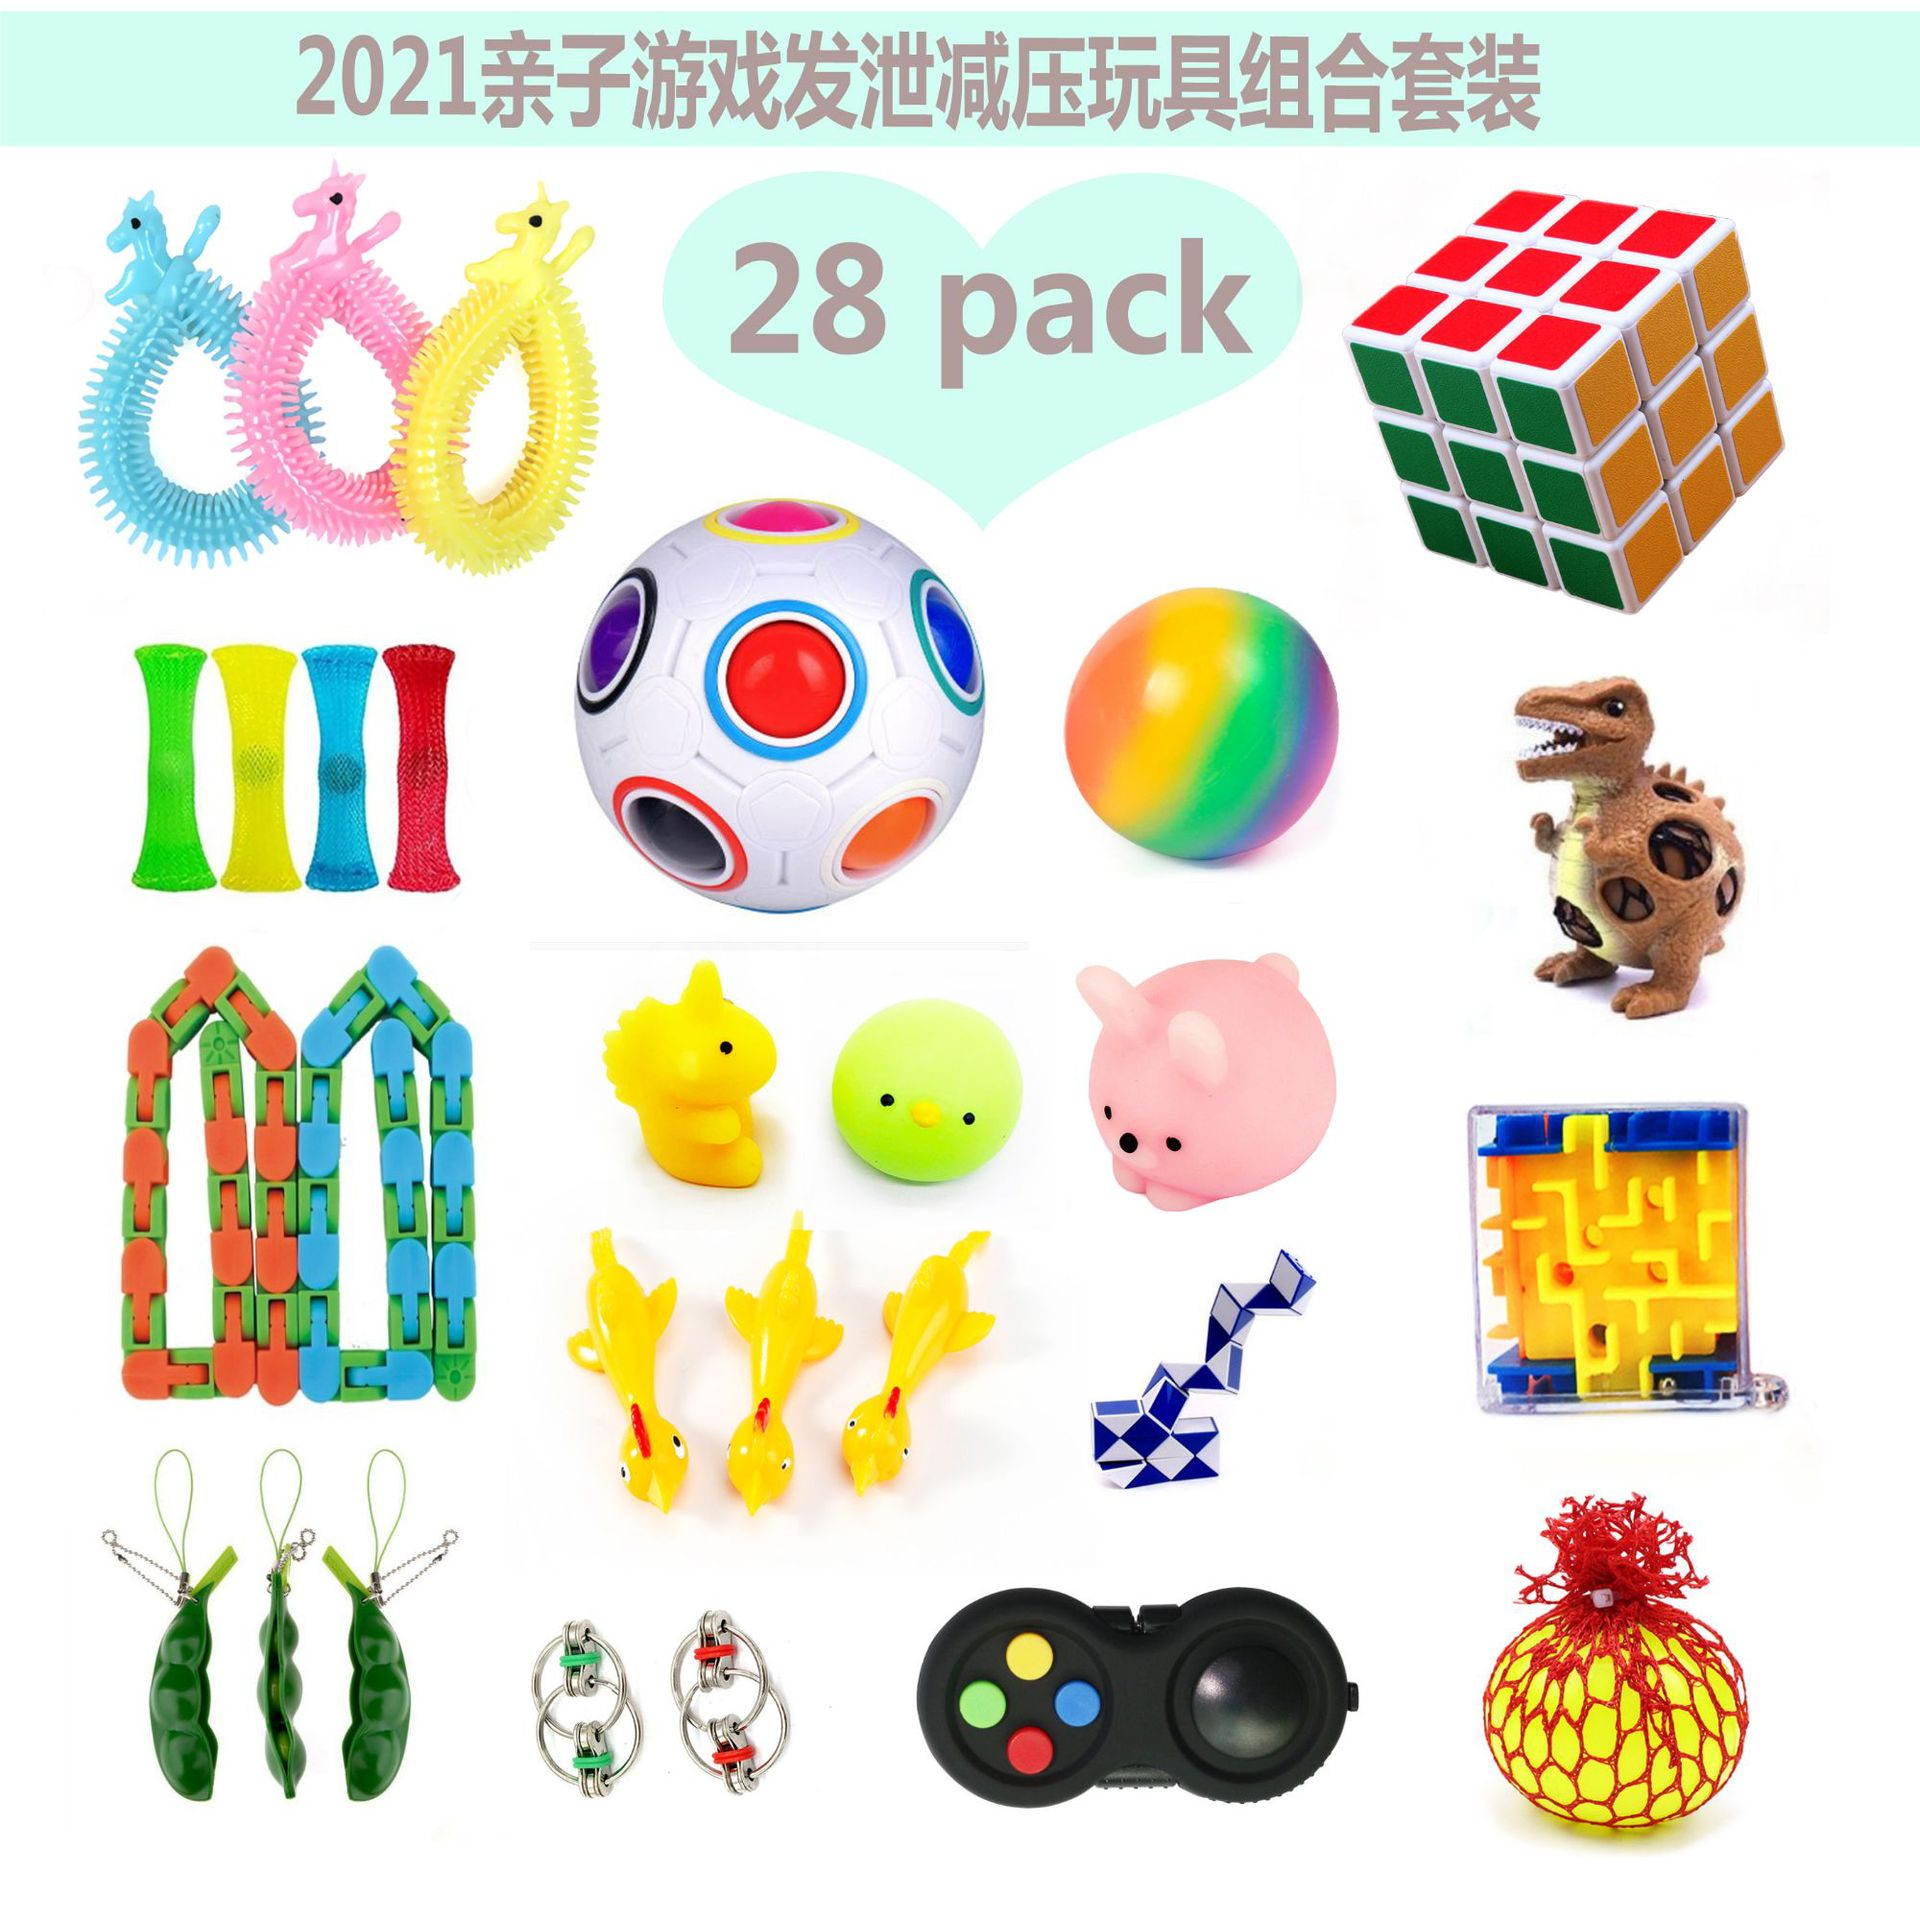 Toy Gift Box Anti-Stress Toys Gift Wrapping Adult Children Wet Soft Sensation Anti-Stress Relief Toys Autism Toys  Squishy